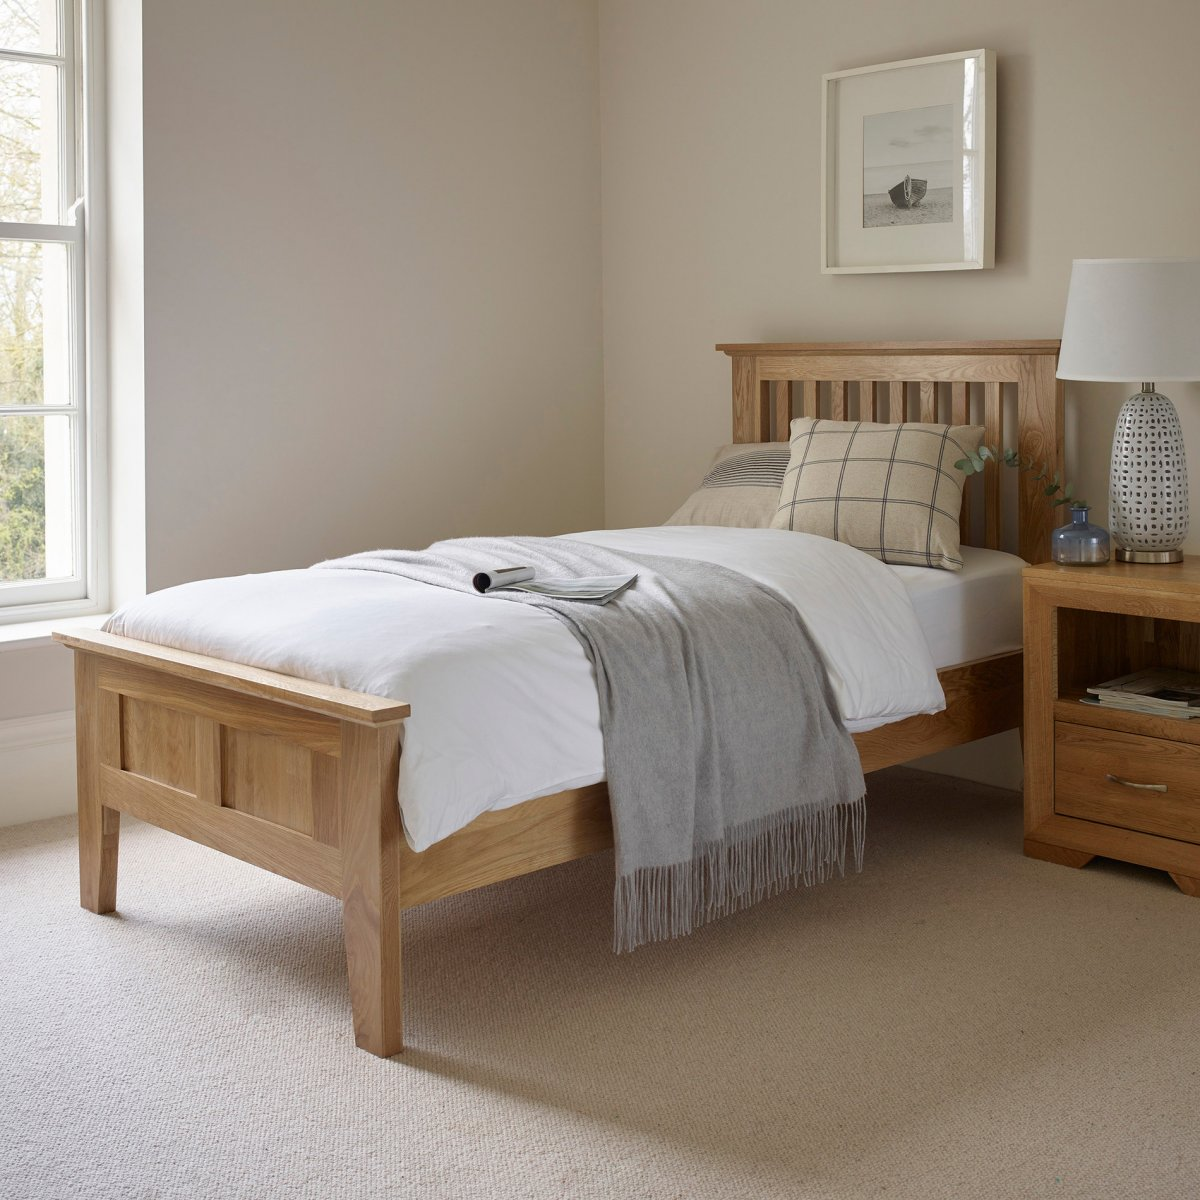 Bevel Single Bed In Natural Solid Oak | Oak Furniture Land